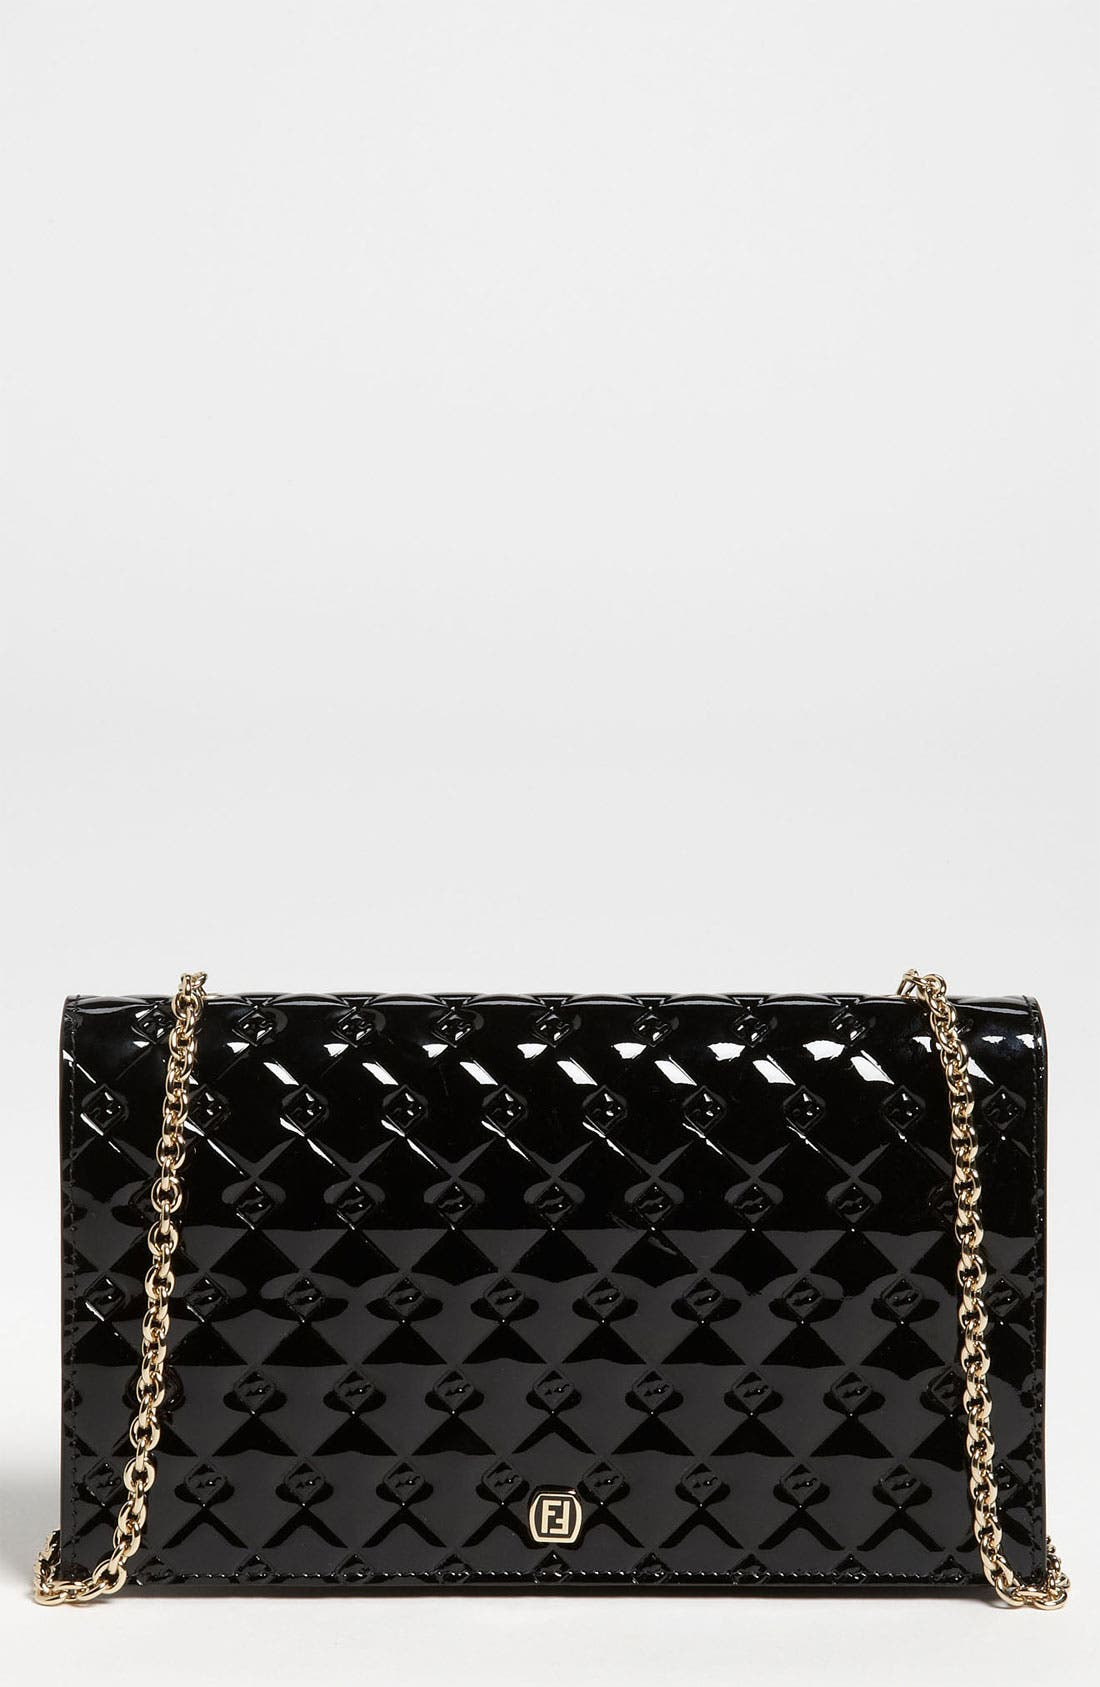 Alternate Image 1 Selected - Fendi 'Fendilicious' Patent Wallet on a Chain